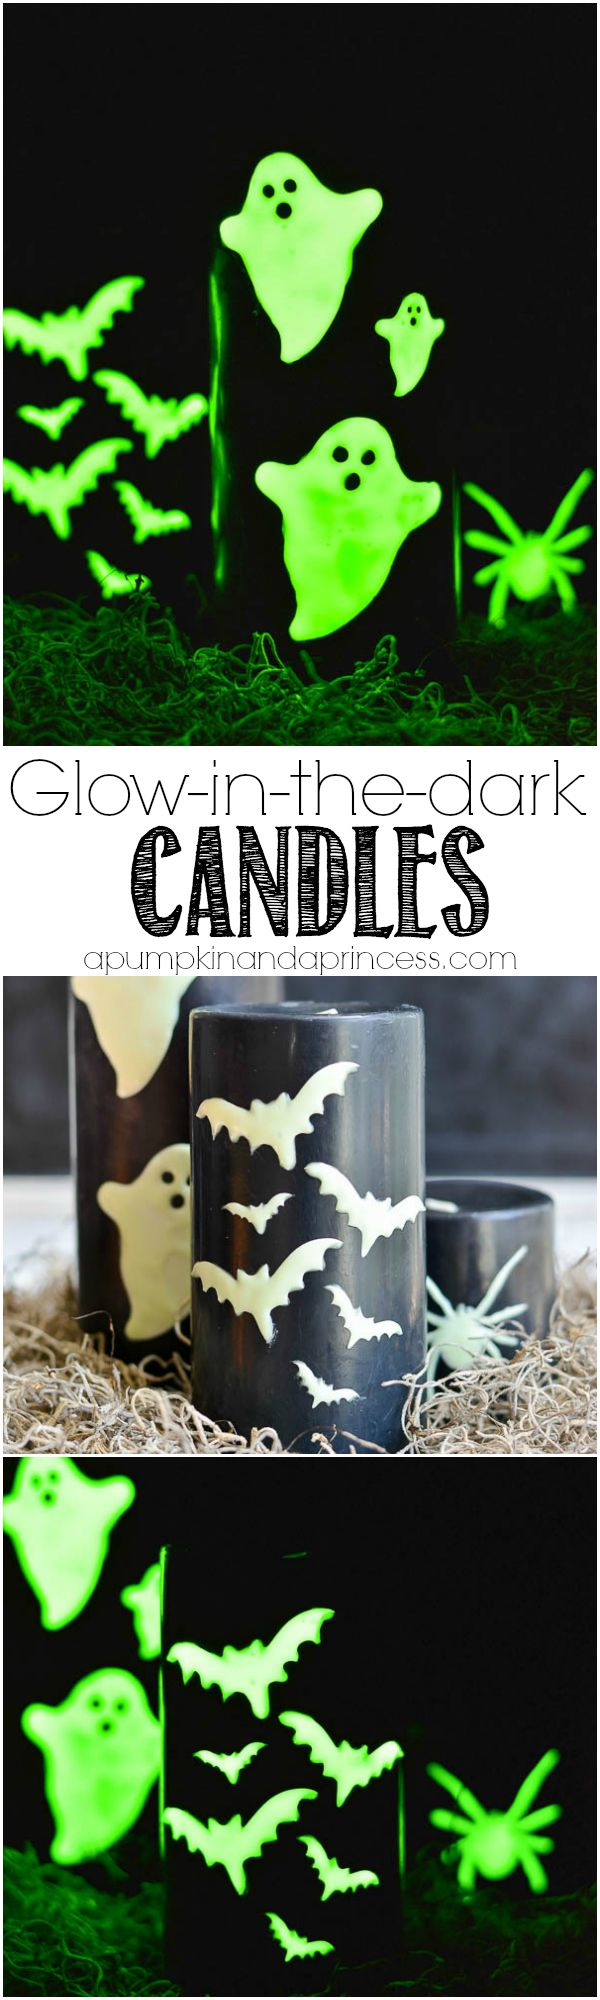 DIY Glow-in-the-dark Candles